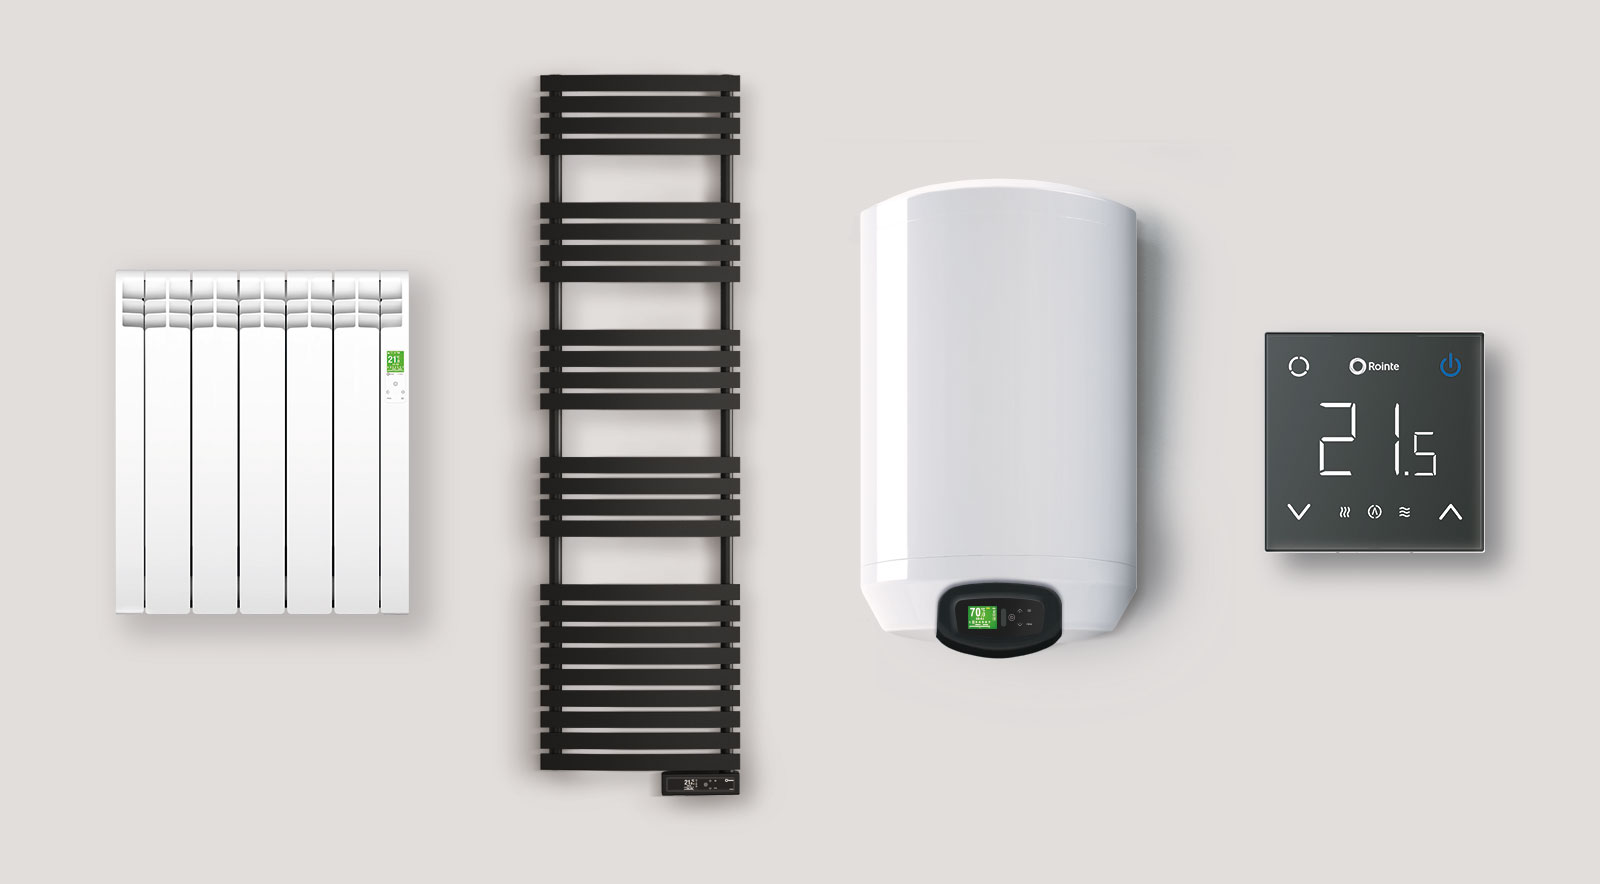 Rointe electric WiFi controlled heating system consists of D Series radiators and towel rails, Rome unvented water heater and CT2 thermostat for underfloor heating